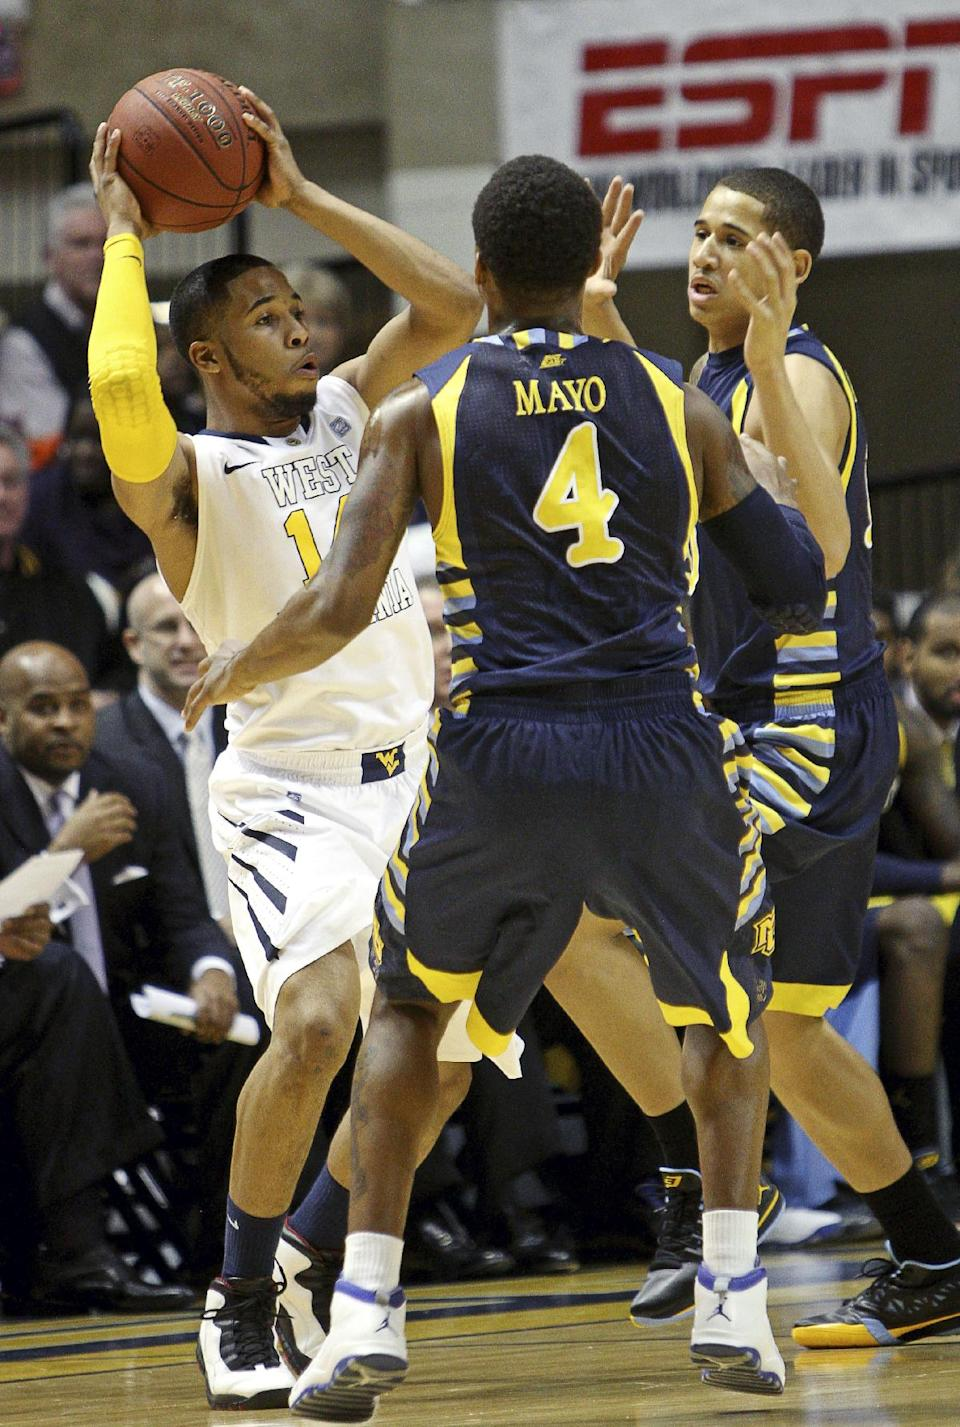 Marquette's Todd Mayo (4) and Juan Anderson, right, pressure West Virginia's Gary Browne (14) in the first half of an NCAA college basketball game, Friday, Feb. 24, 2012, in Morgantown, W.Va. (AP Photo/David Smith)